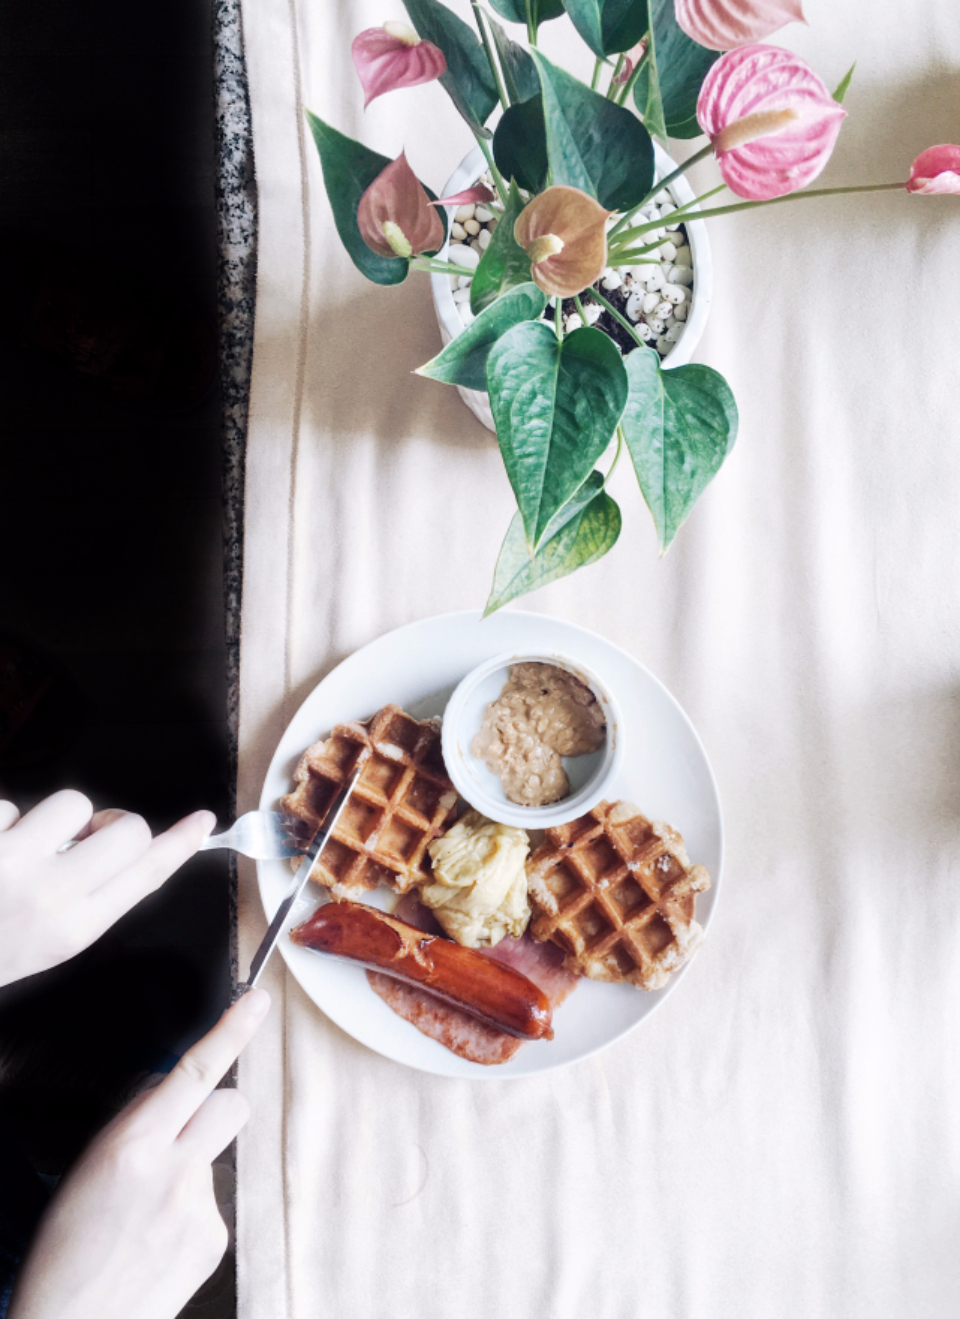 waffle flatlay flowers sausage breakfast brunch yum food hands